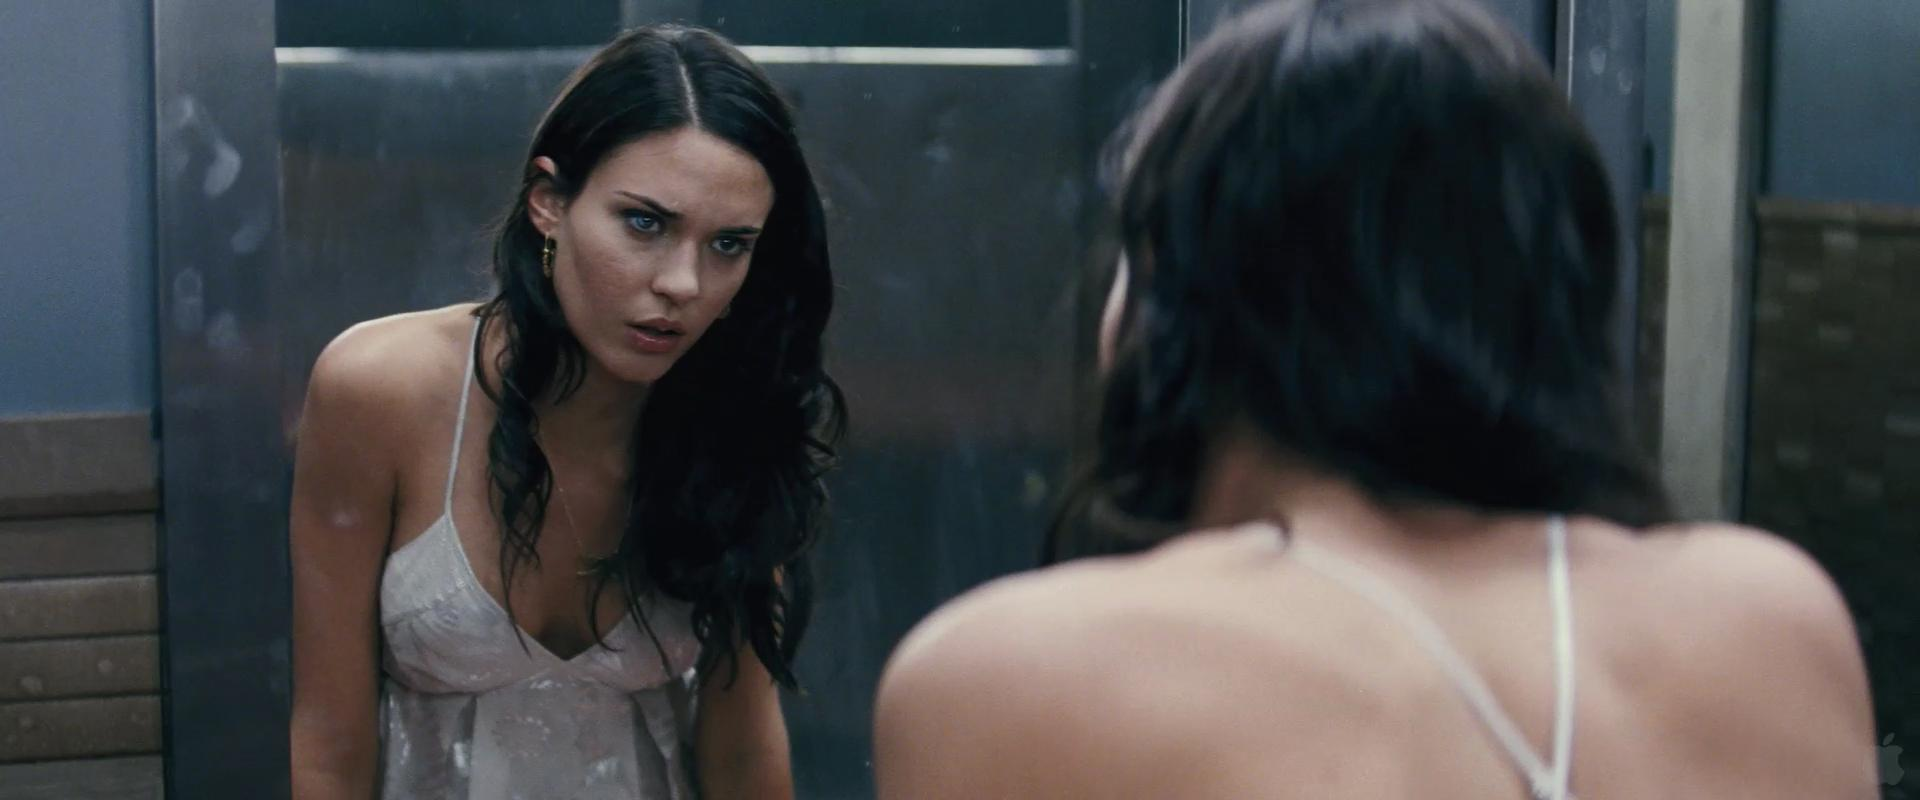 Odette Annable Nude, Naked - Pics And Videos -2601